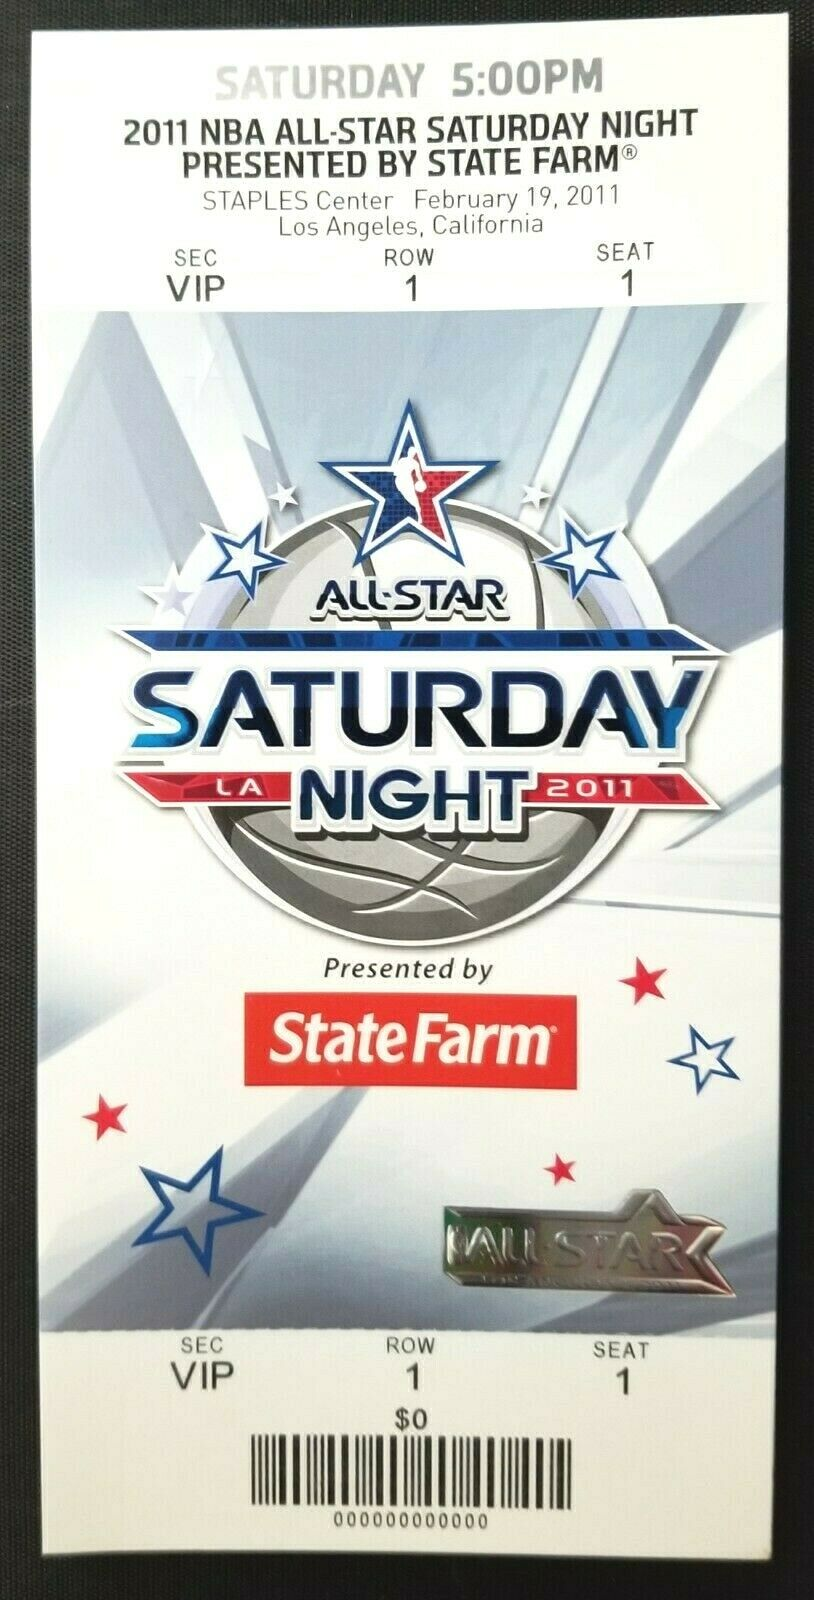 2011 NBA All Star Basketball Saturday Night Full Promo Ticket Staples Center